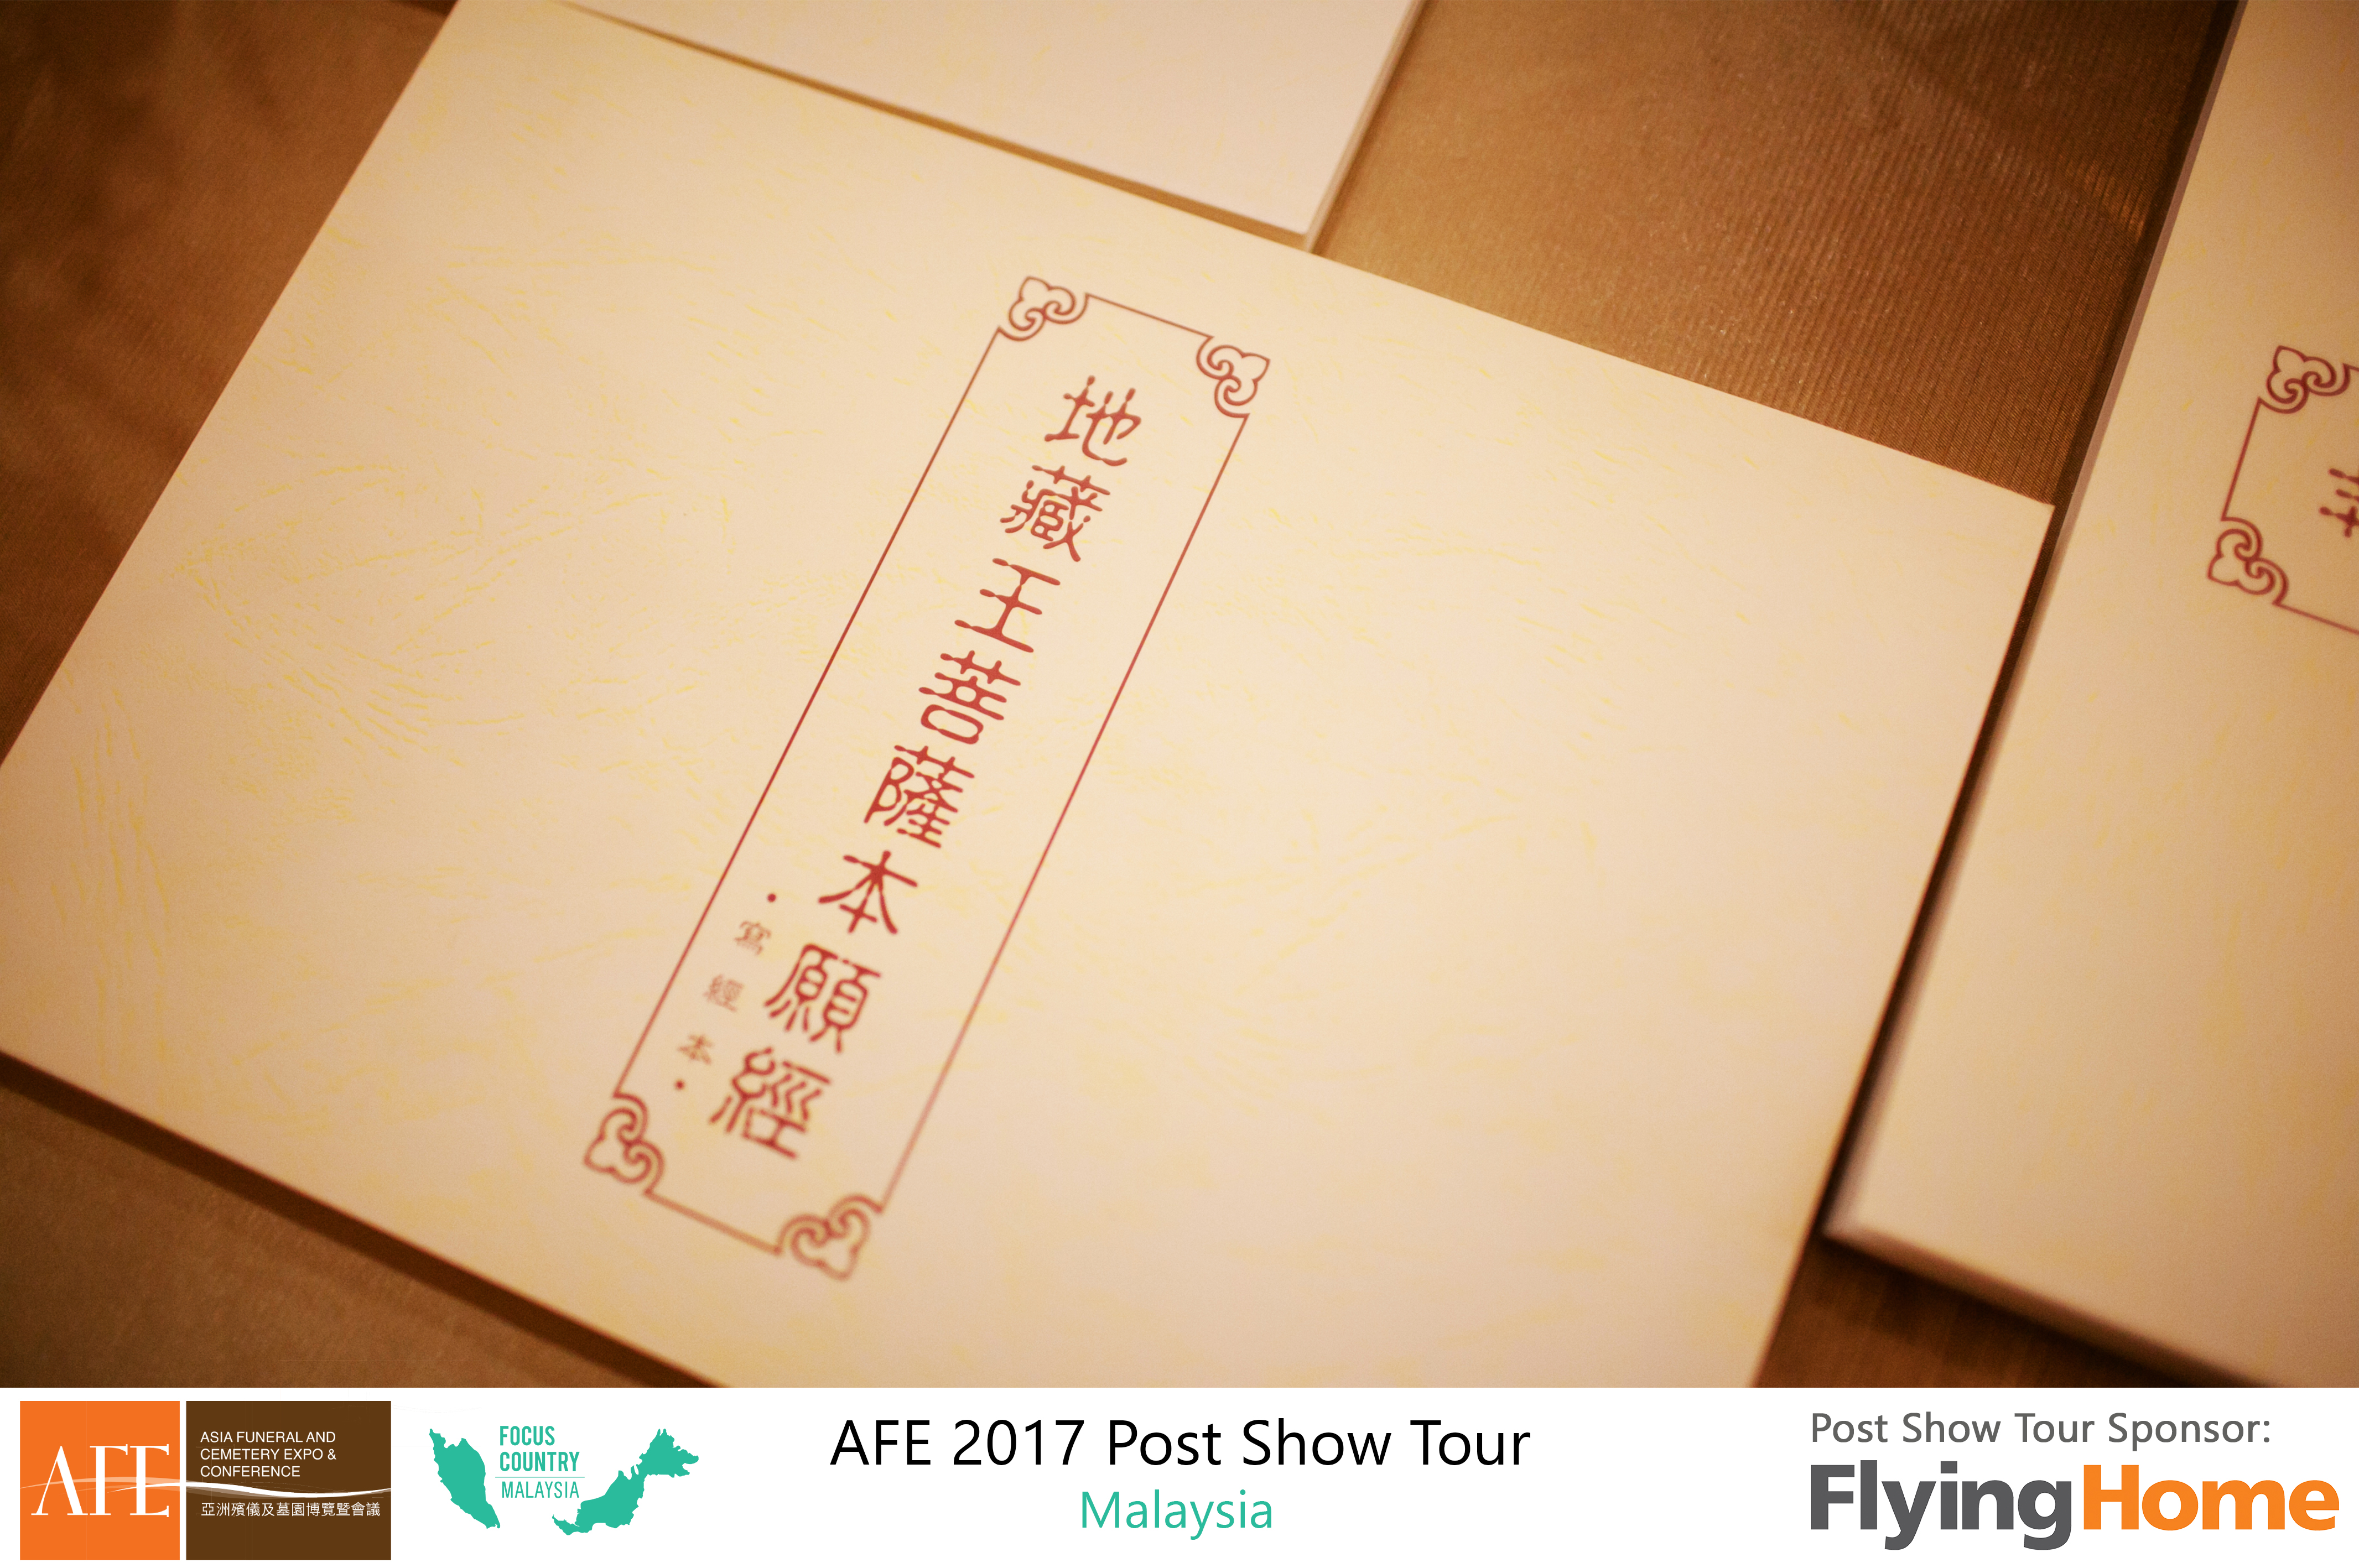 AFE Post Show Tour 2017 Day 3 -54